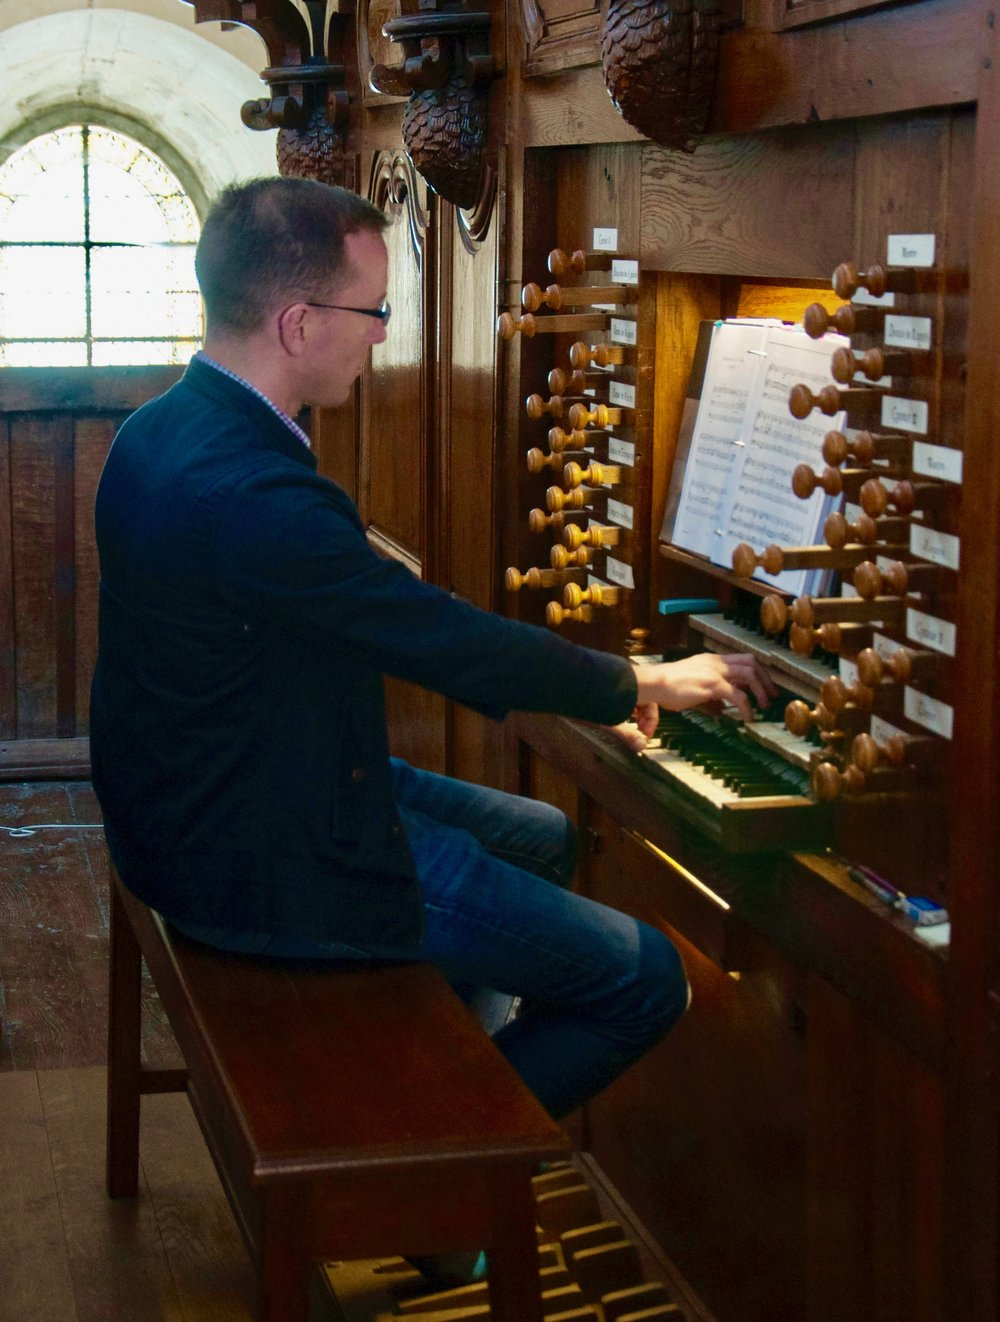 Christian Lane playing the organ at Rozay-en-Brie